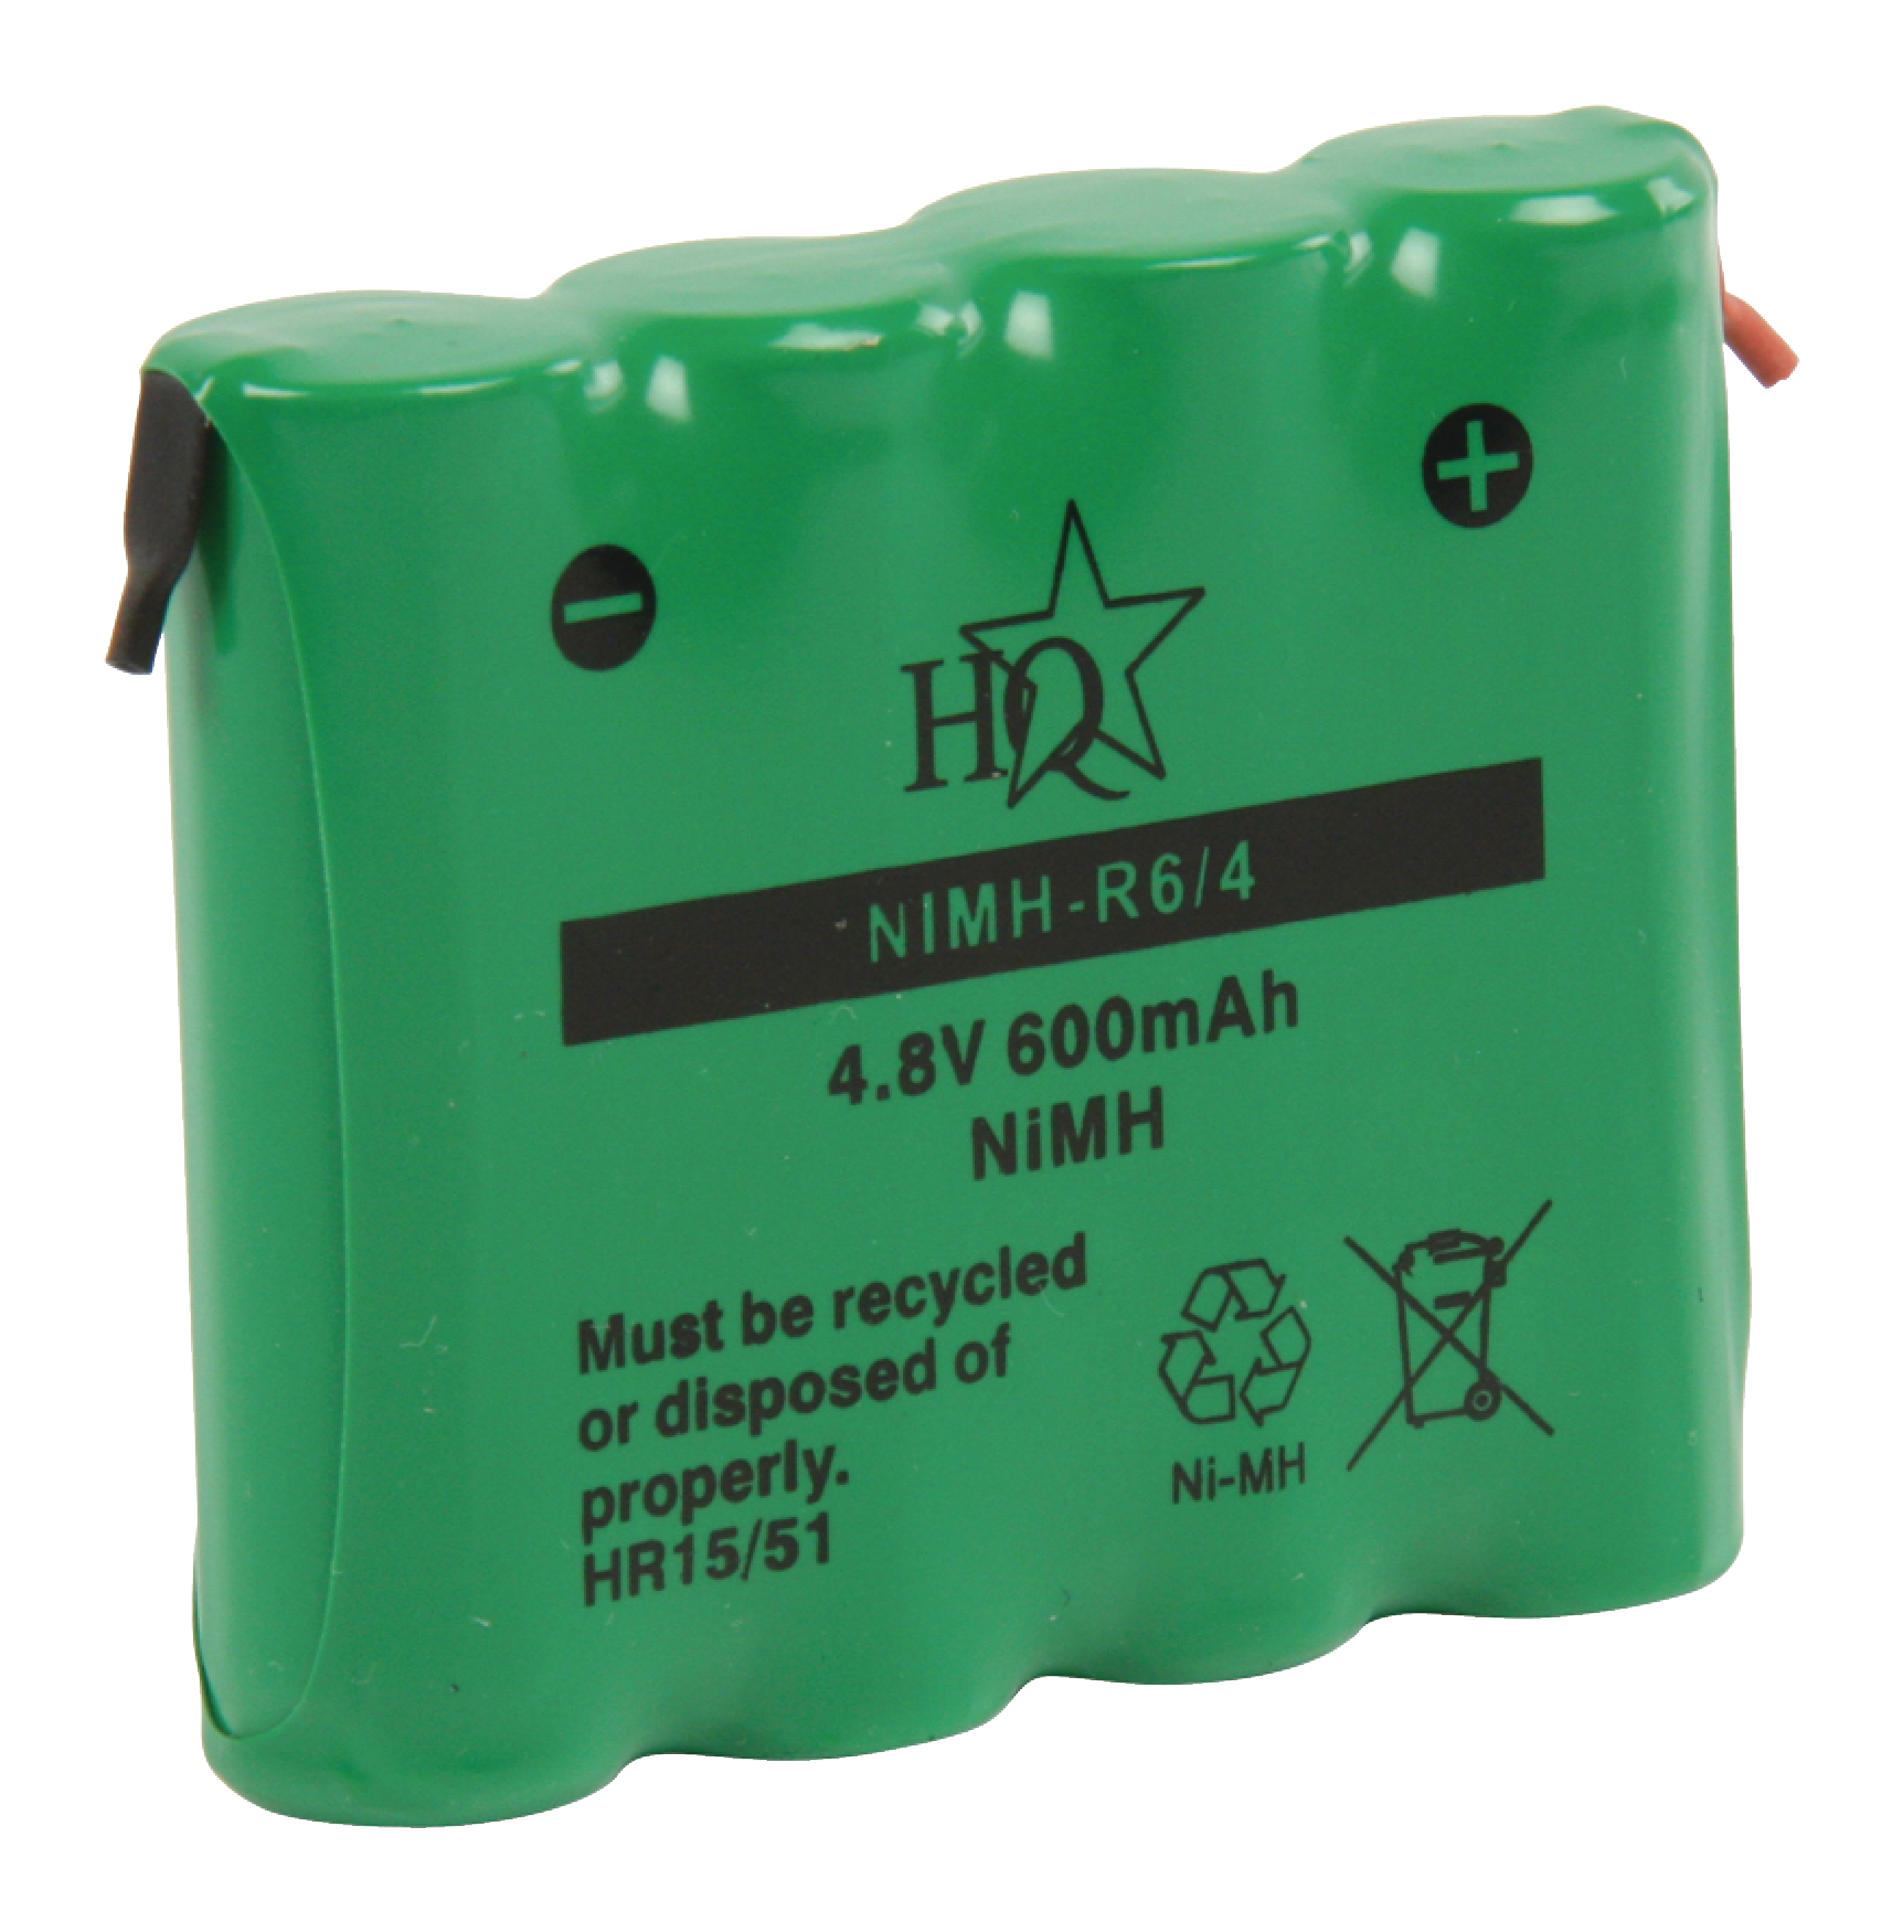 nimh r6 4 hq rechargeable nimh battery pack 4 8 v 600 mah 1 pack electronic. Black Bedroom Furniture Sets. Home Design Ideas